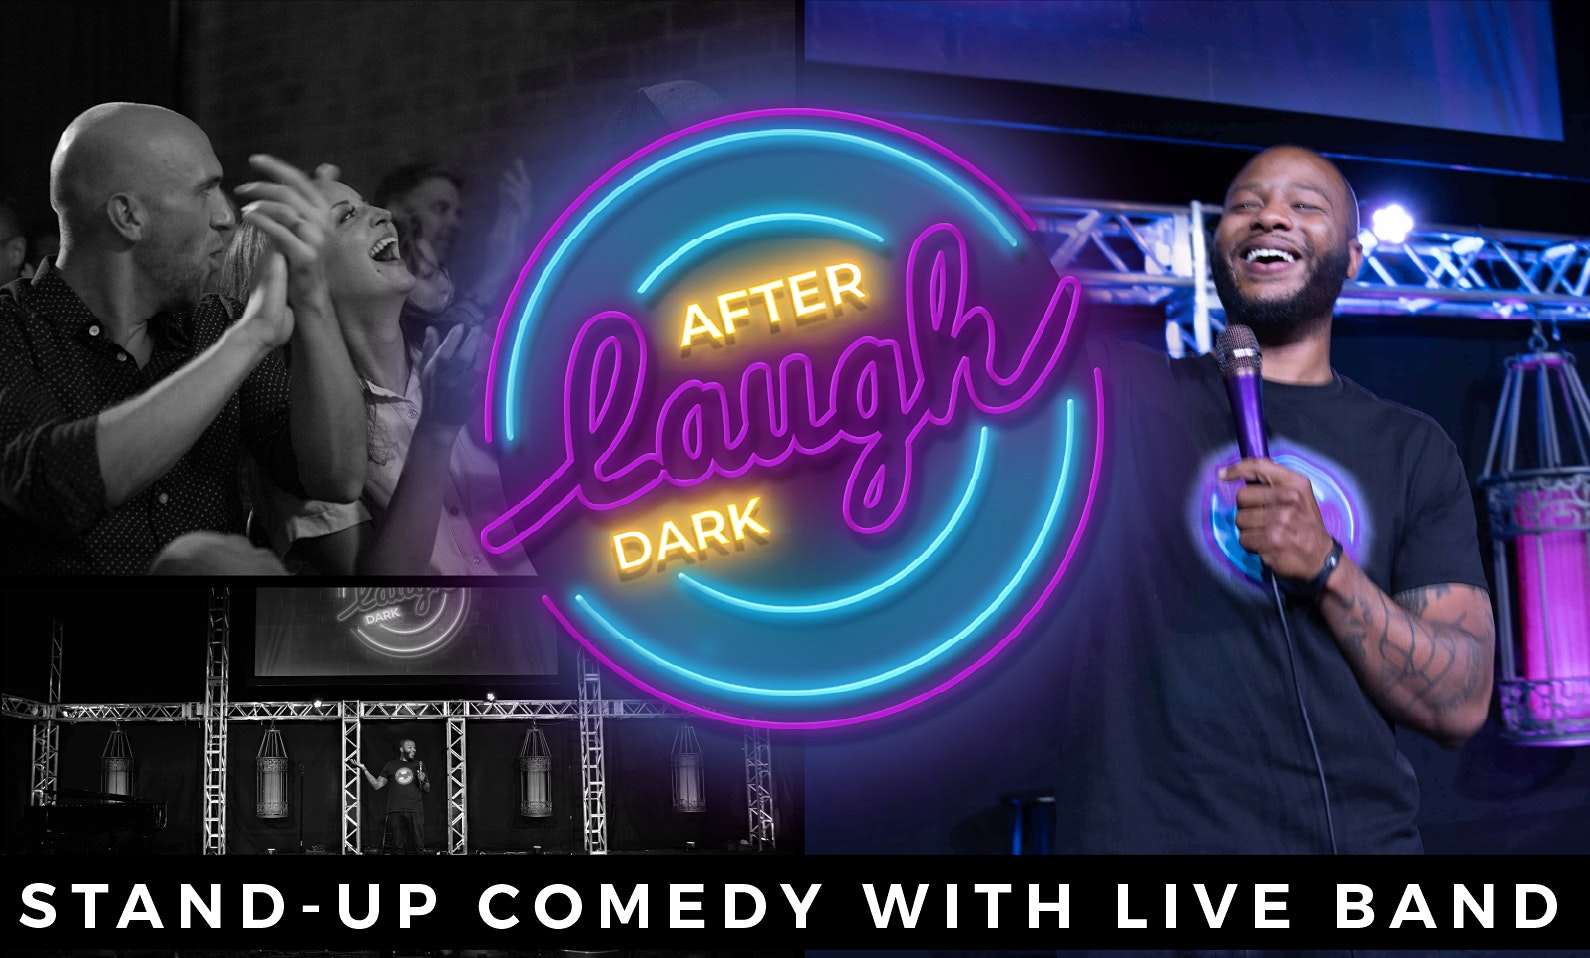 Laugh After Dark Stand-Up Comedy With Live Band